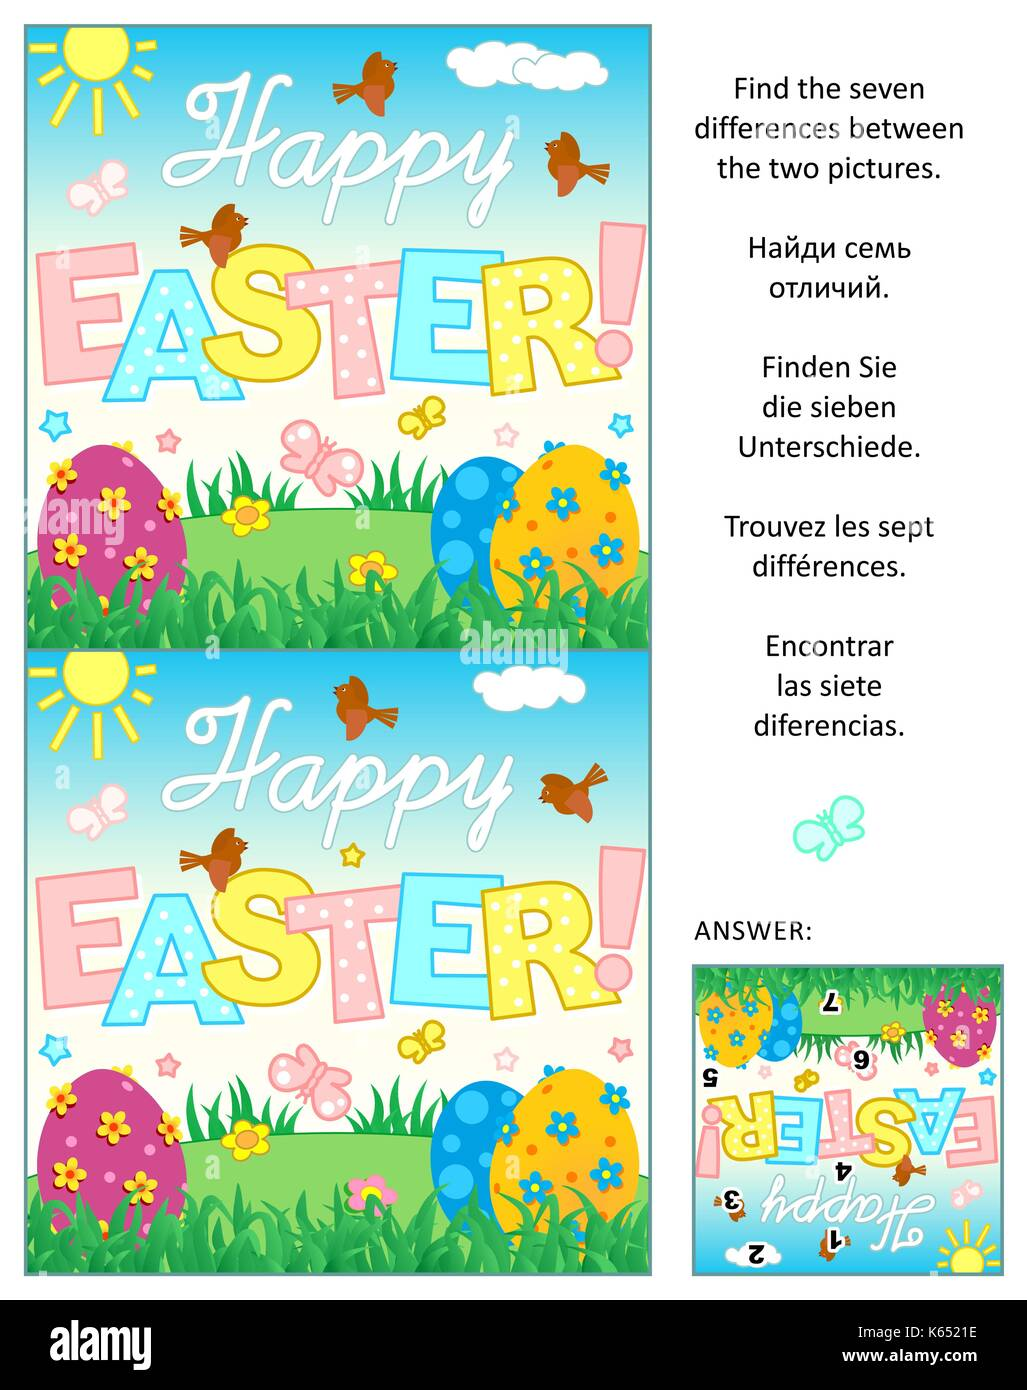 Picture Puzzle Find The Seven Differences Between The Two Easter